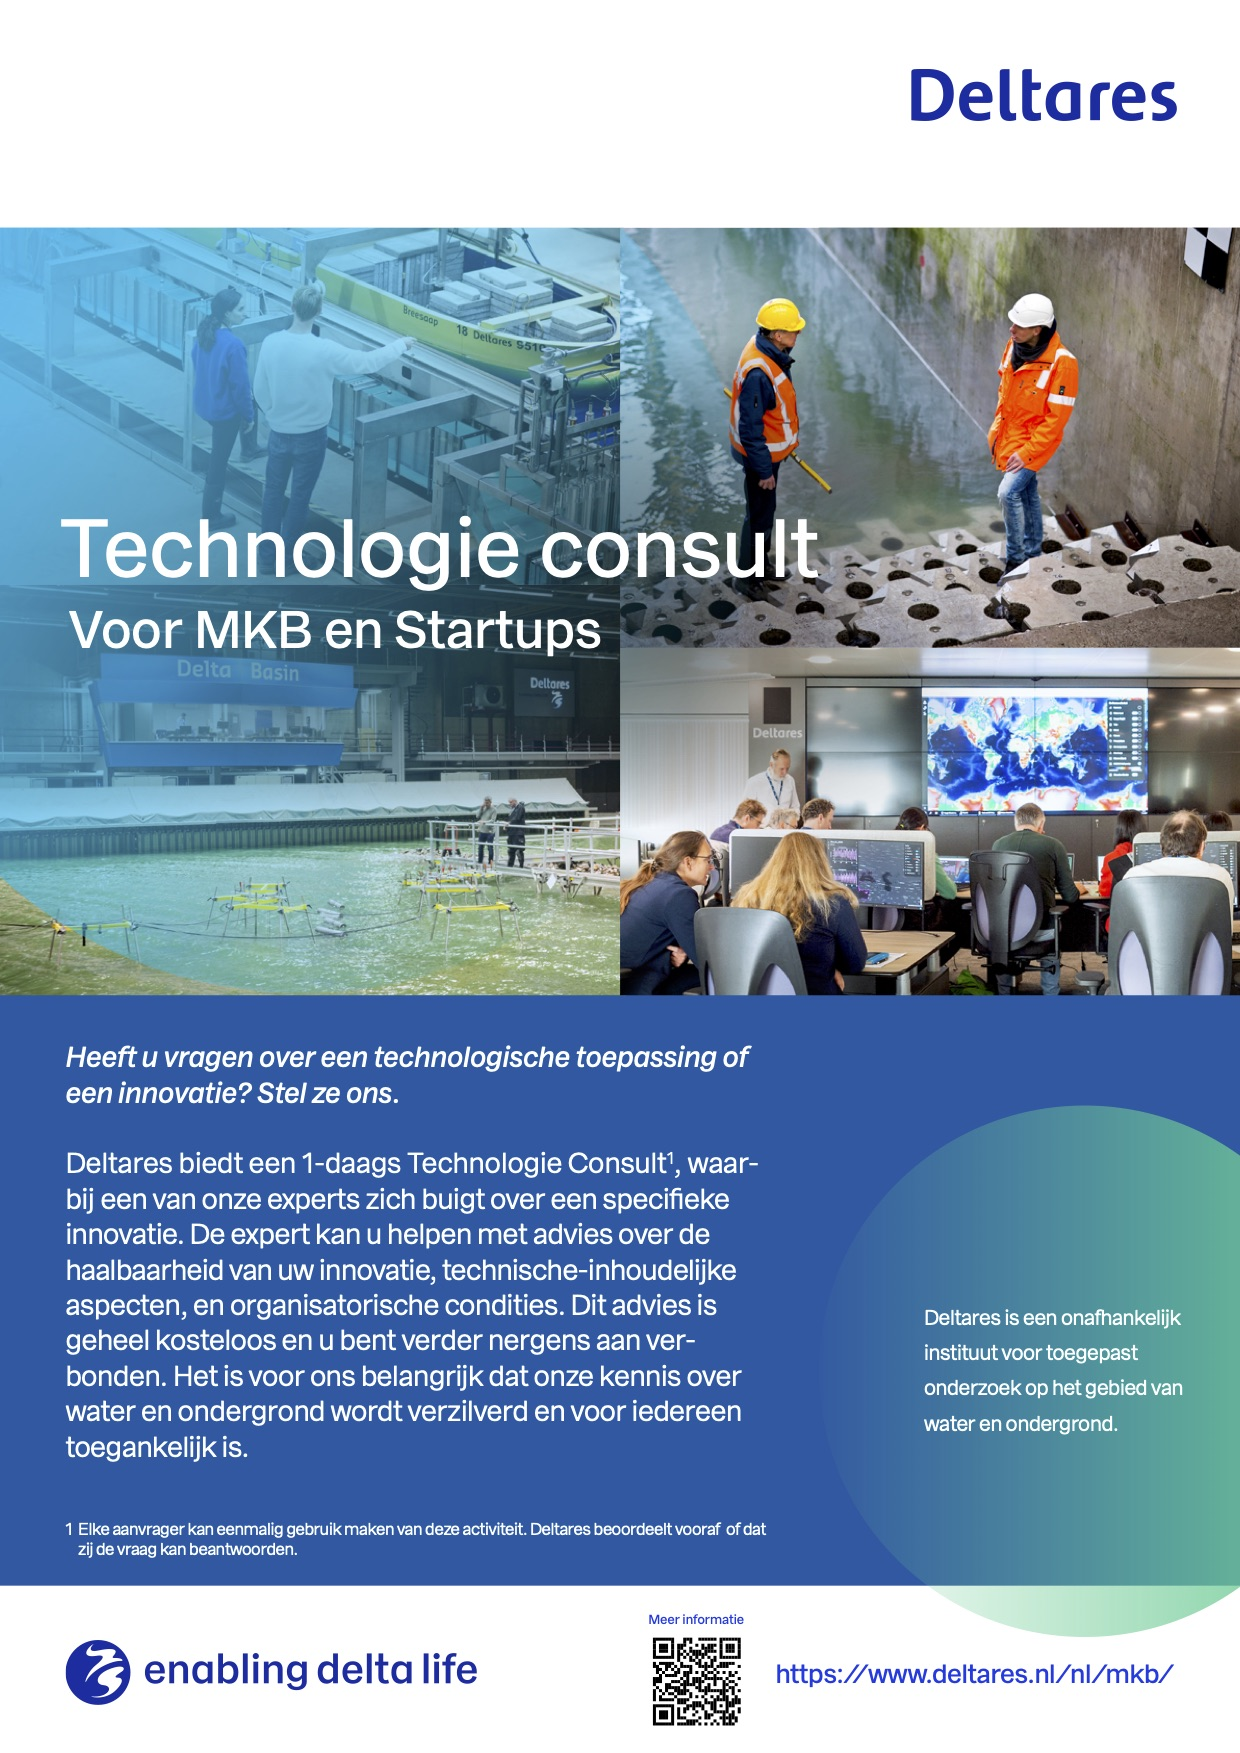 Deltares Tech Consult